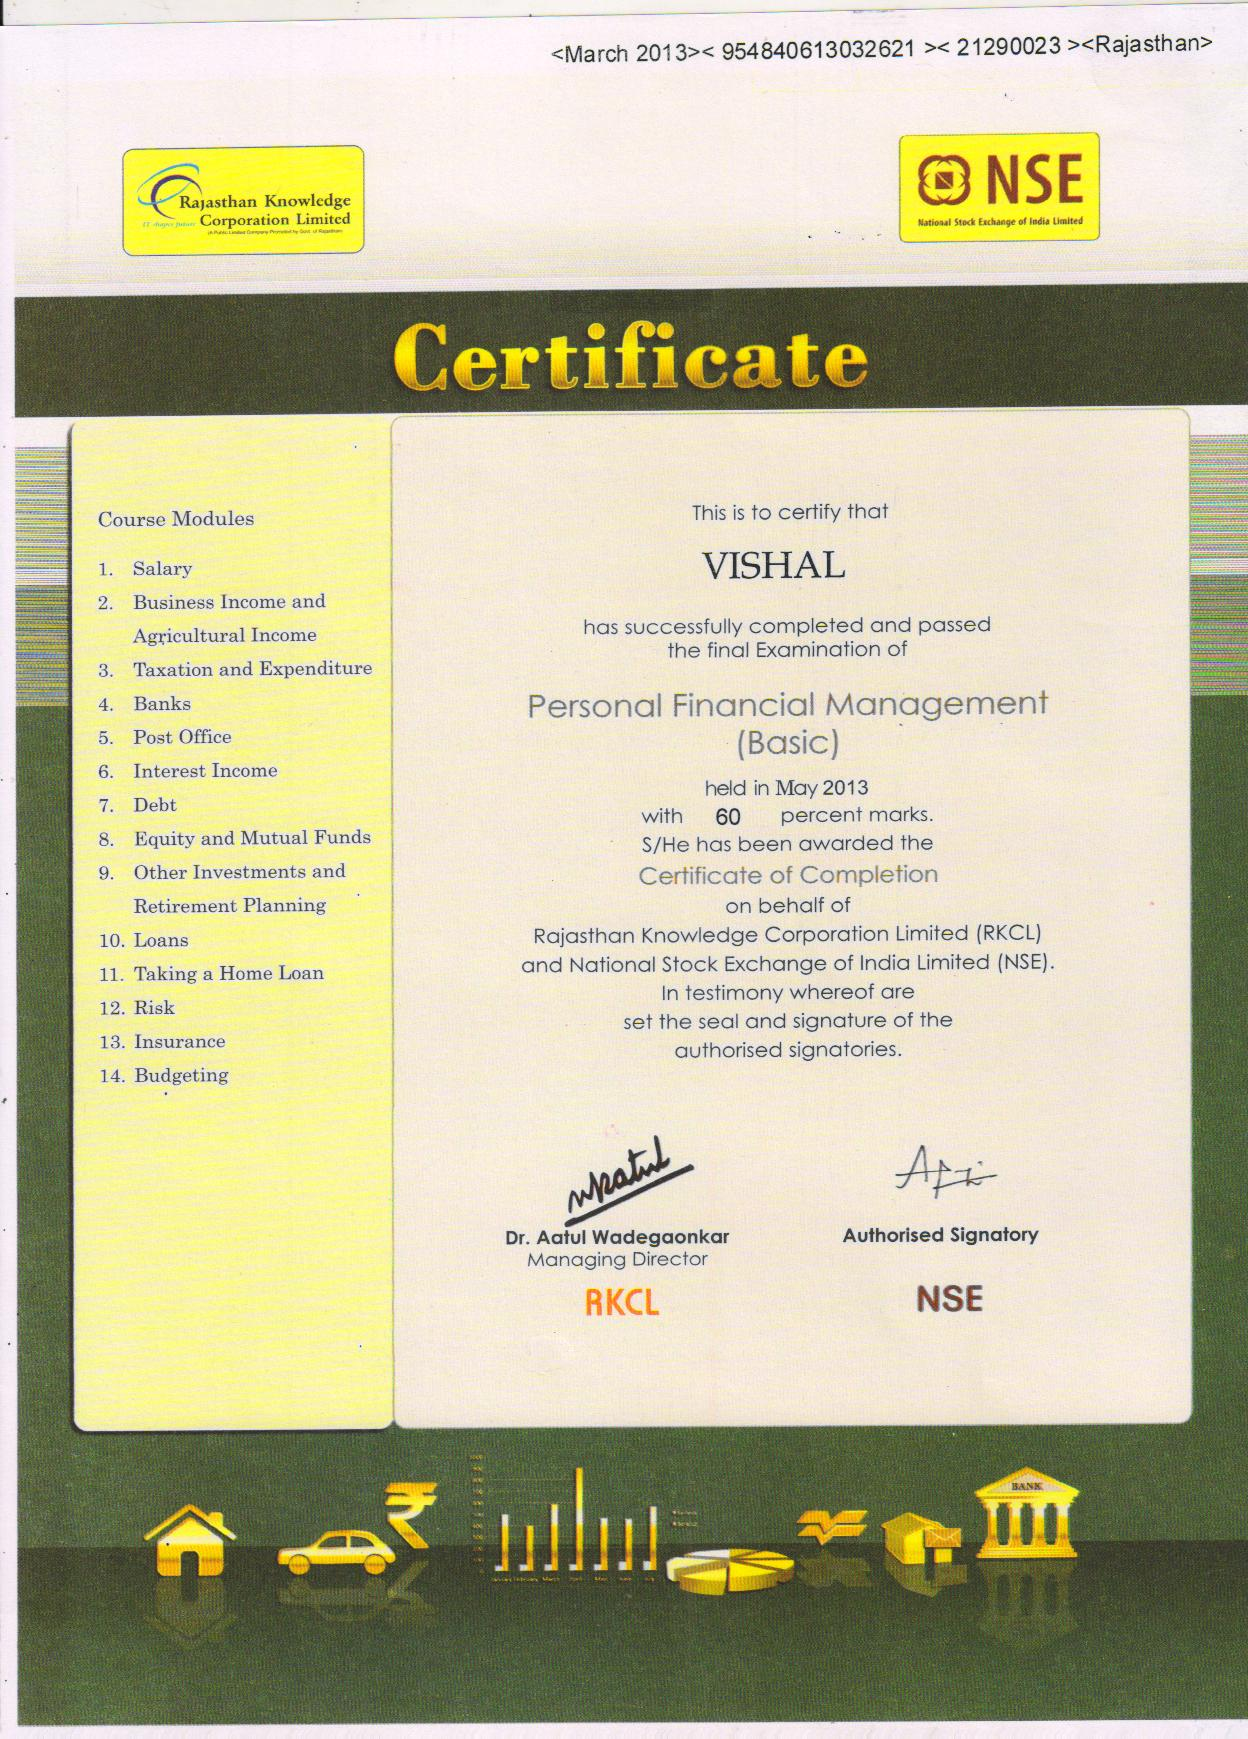 Gait ictl is the best skill development training organization for sample course certificates yelopaper Gallery